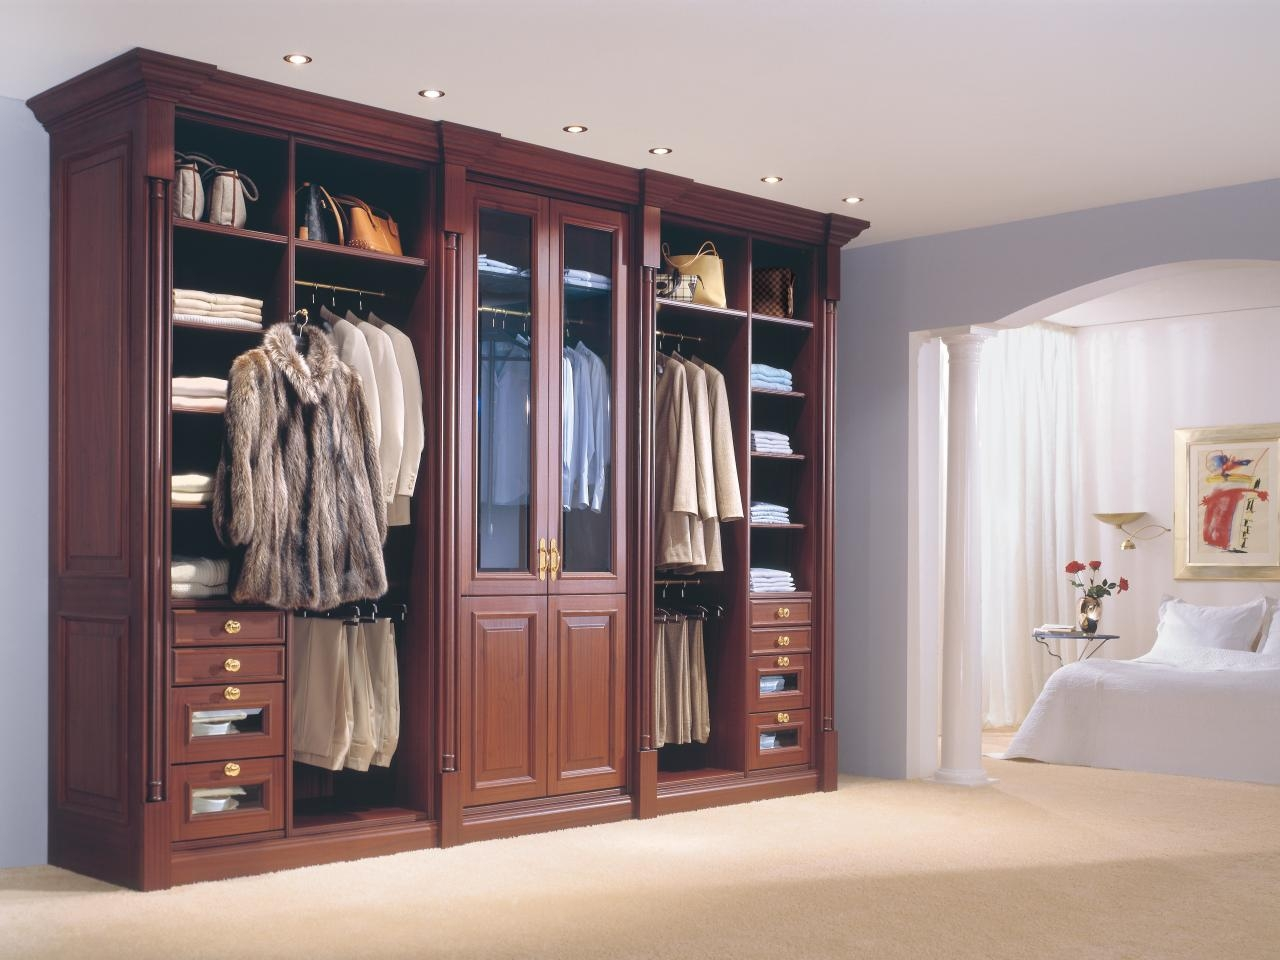 Clothes Racks And Portable Closets Hgtv With Regard To Mobile Wardrobe Cabinets (Image 5 of 25)